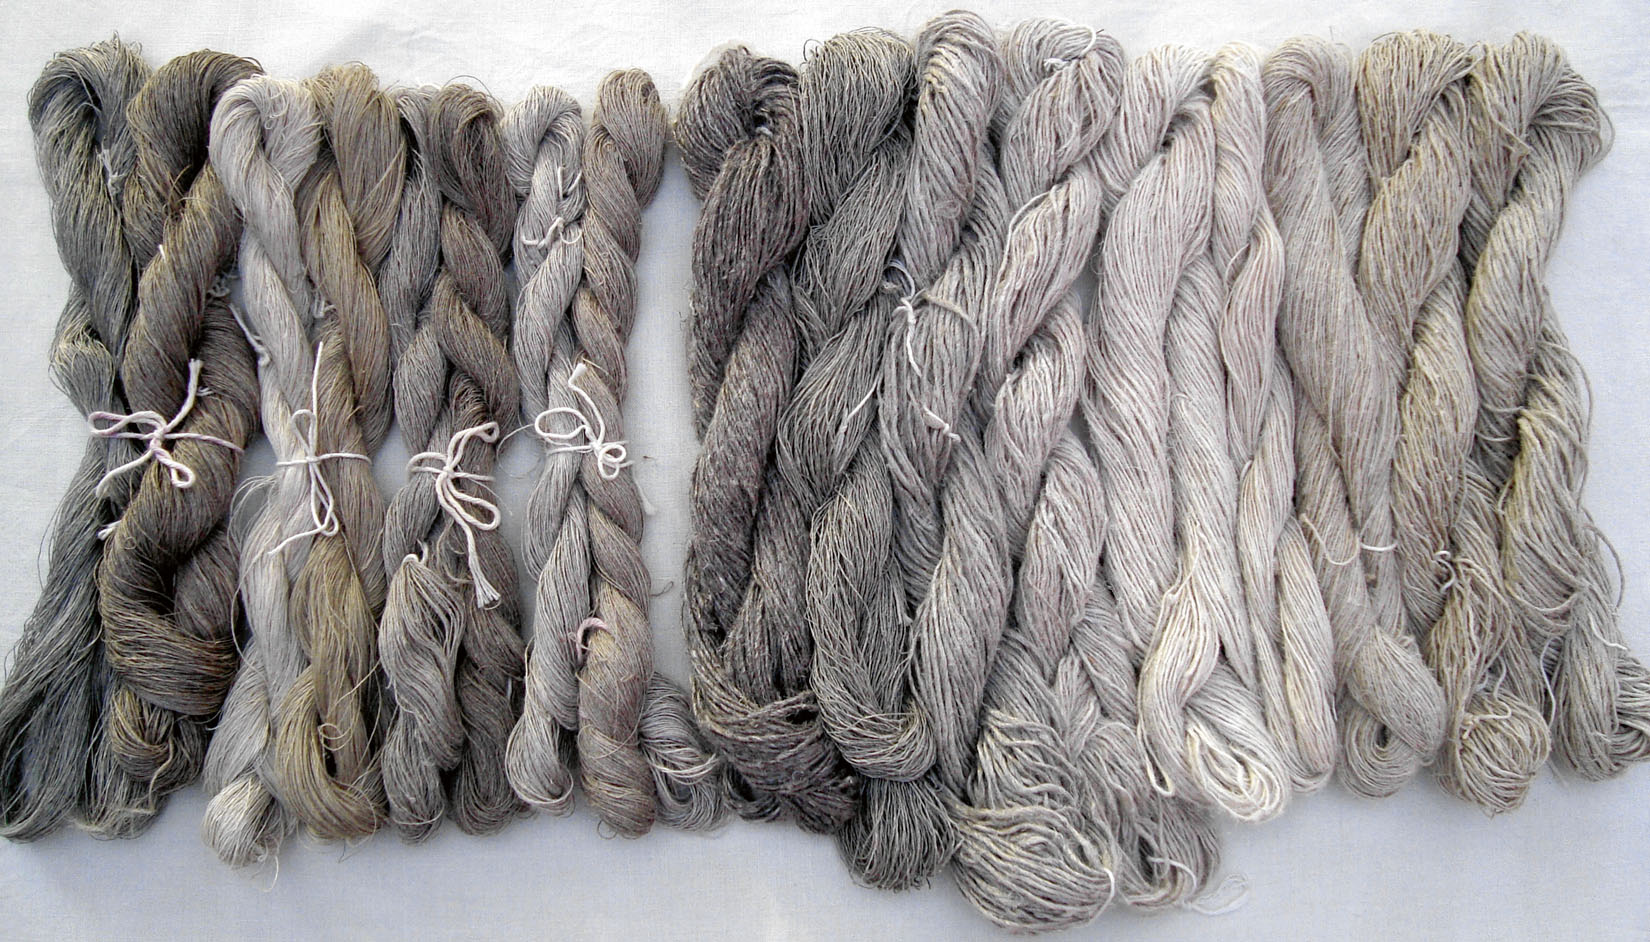 Flax, from Seed to Linen Yarn | Journal for Weavers Spinners and Dyers